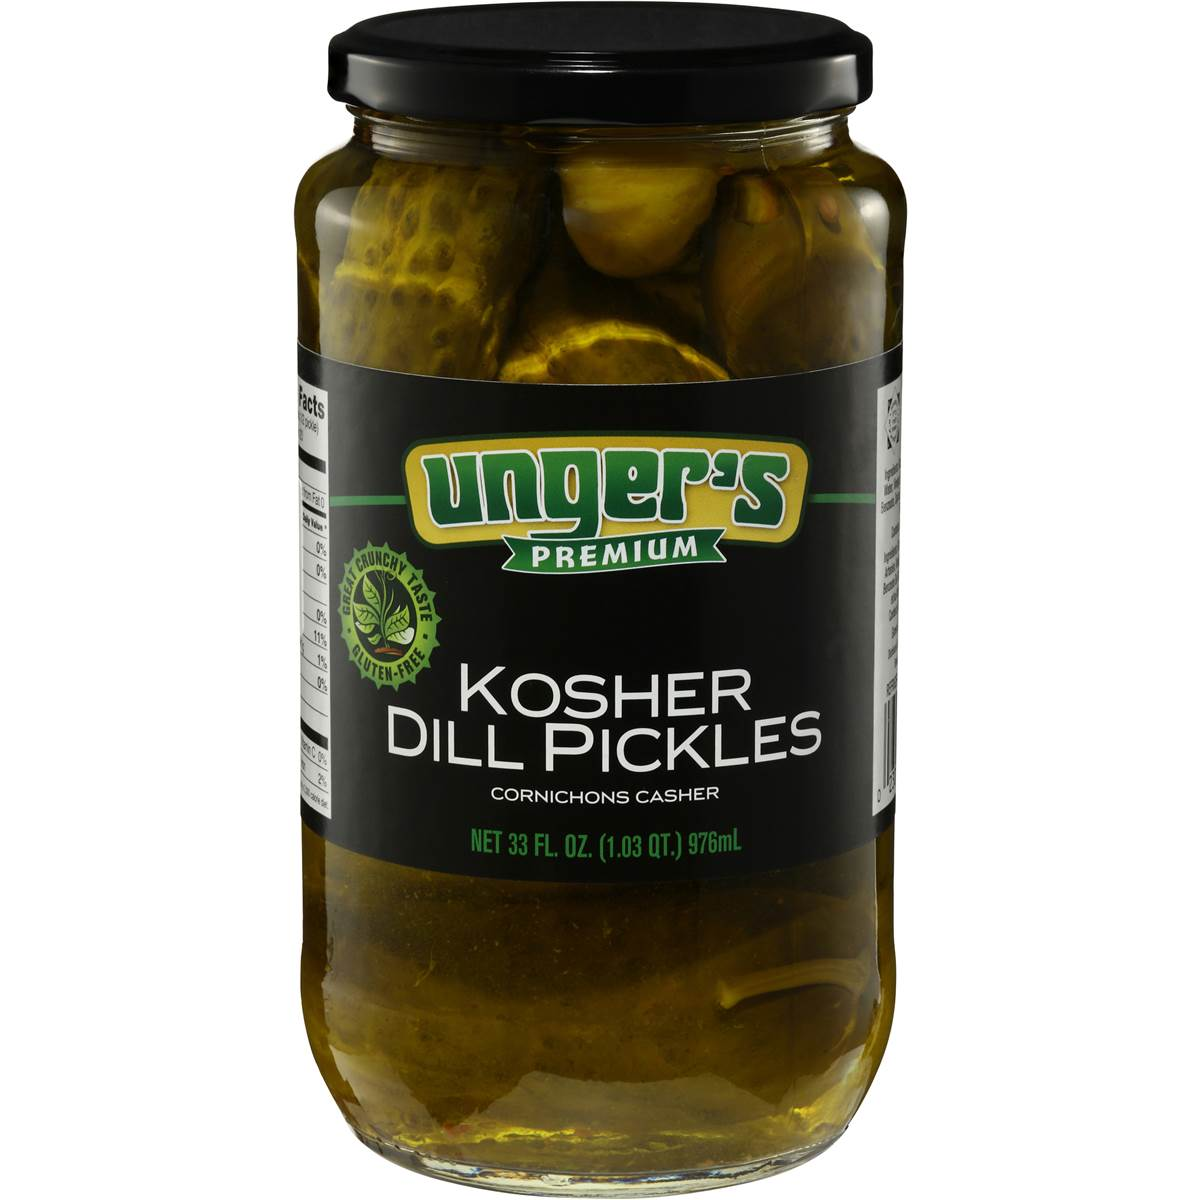 Kosher Pickles Ungers Kosher Pickled Dill 946ml Woolworths